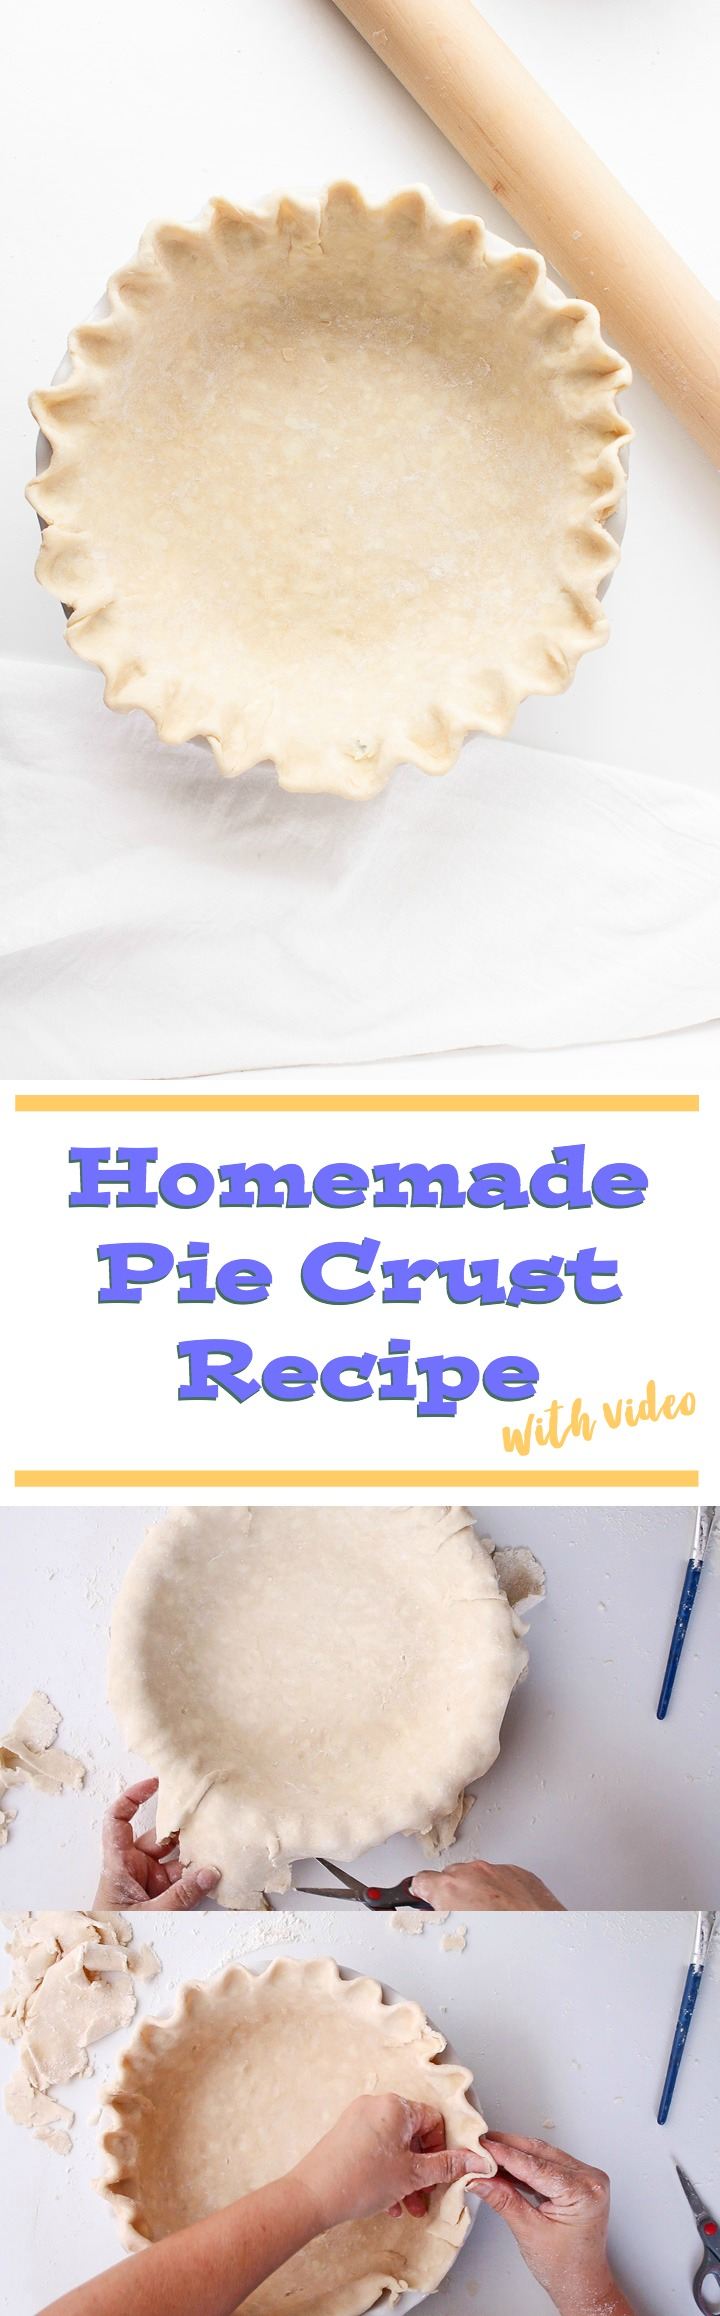 How to Make a Homemade Pie Crust with a Simple How to Video | The Bearfoot Baker